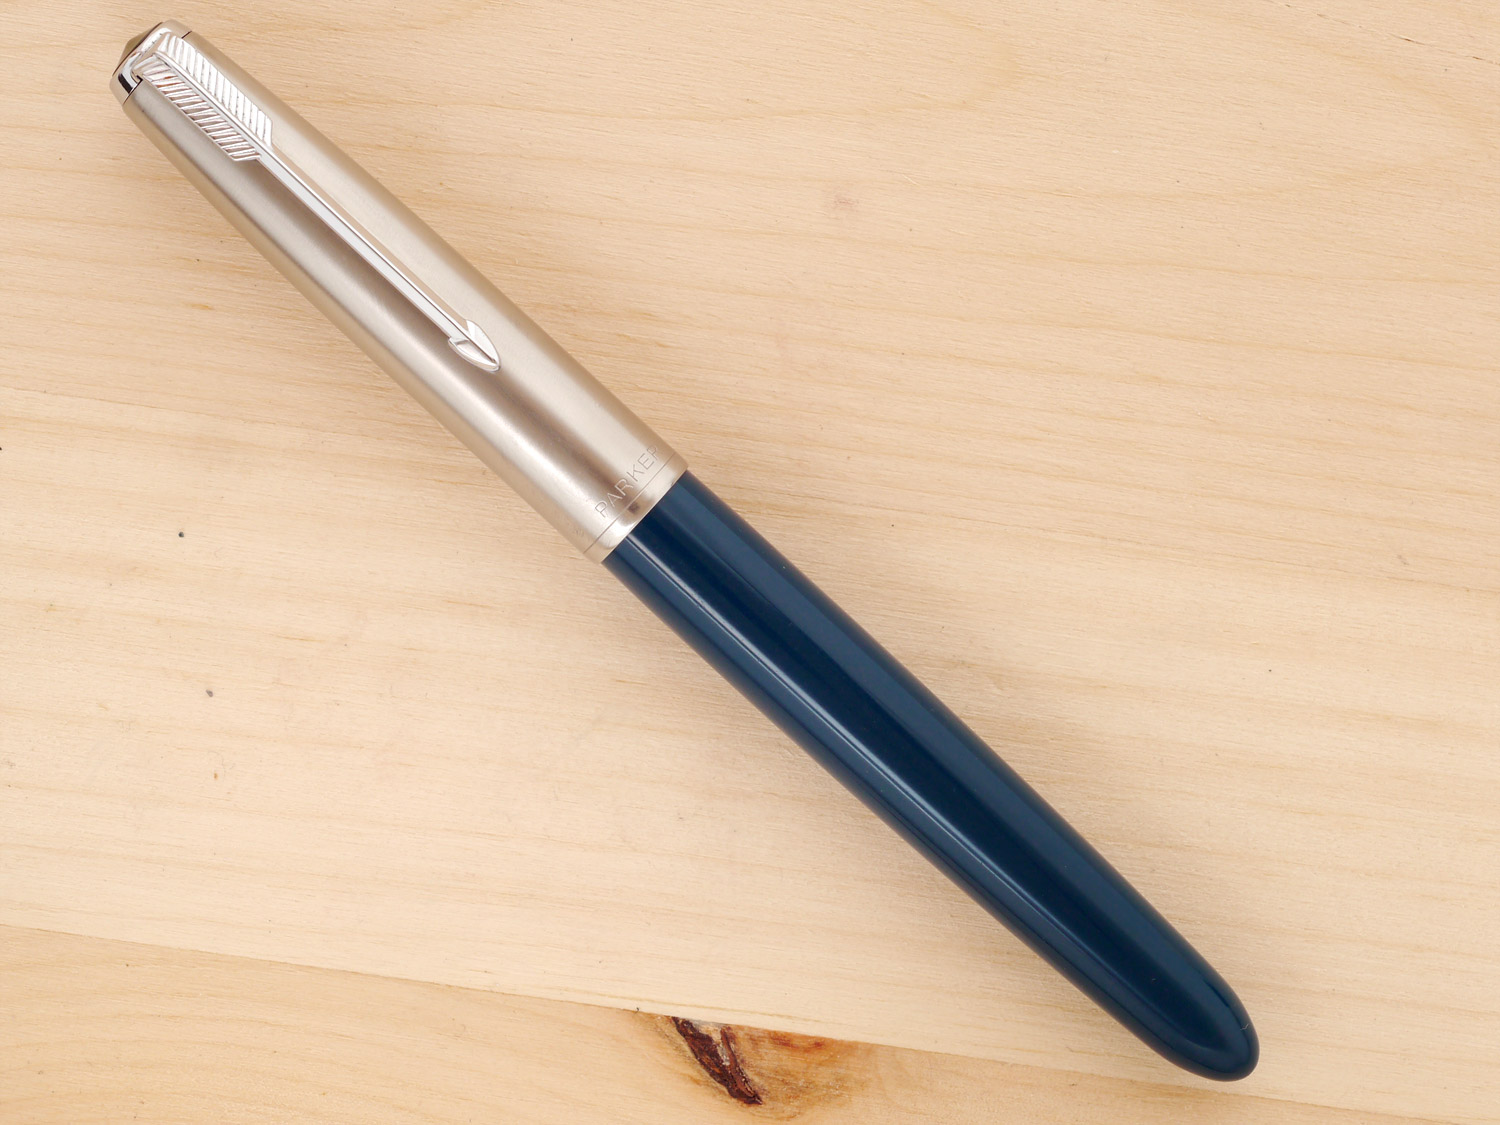 Parker 51 Aerometric Teal Blue, F, capped